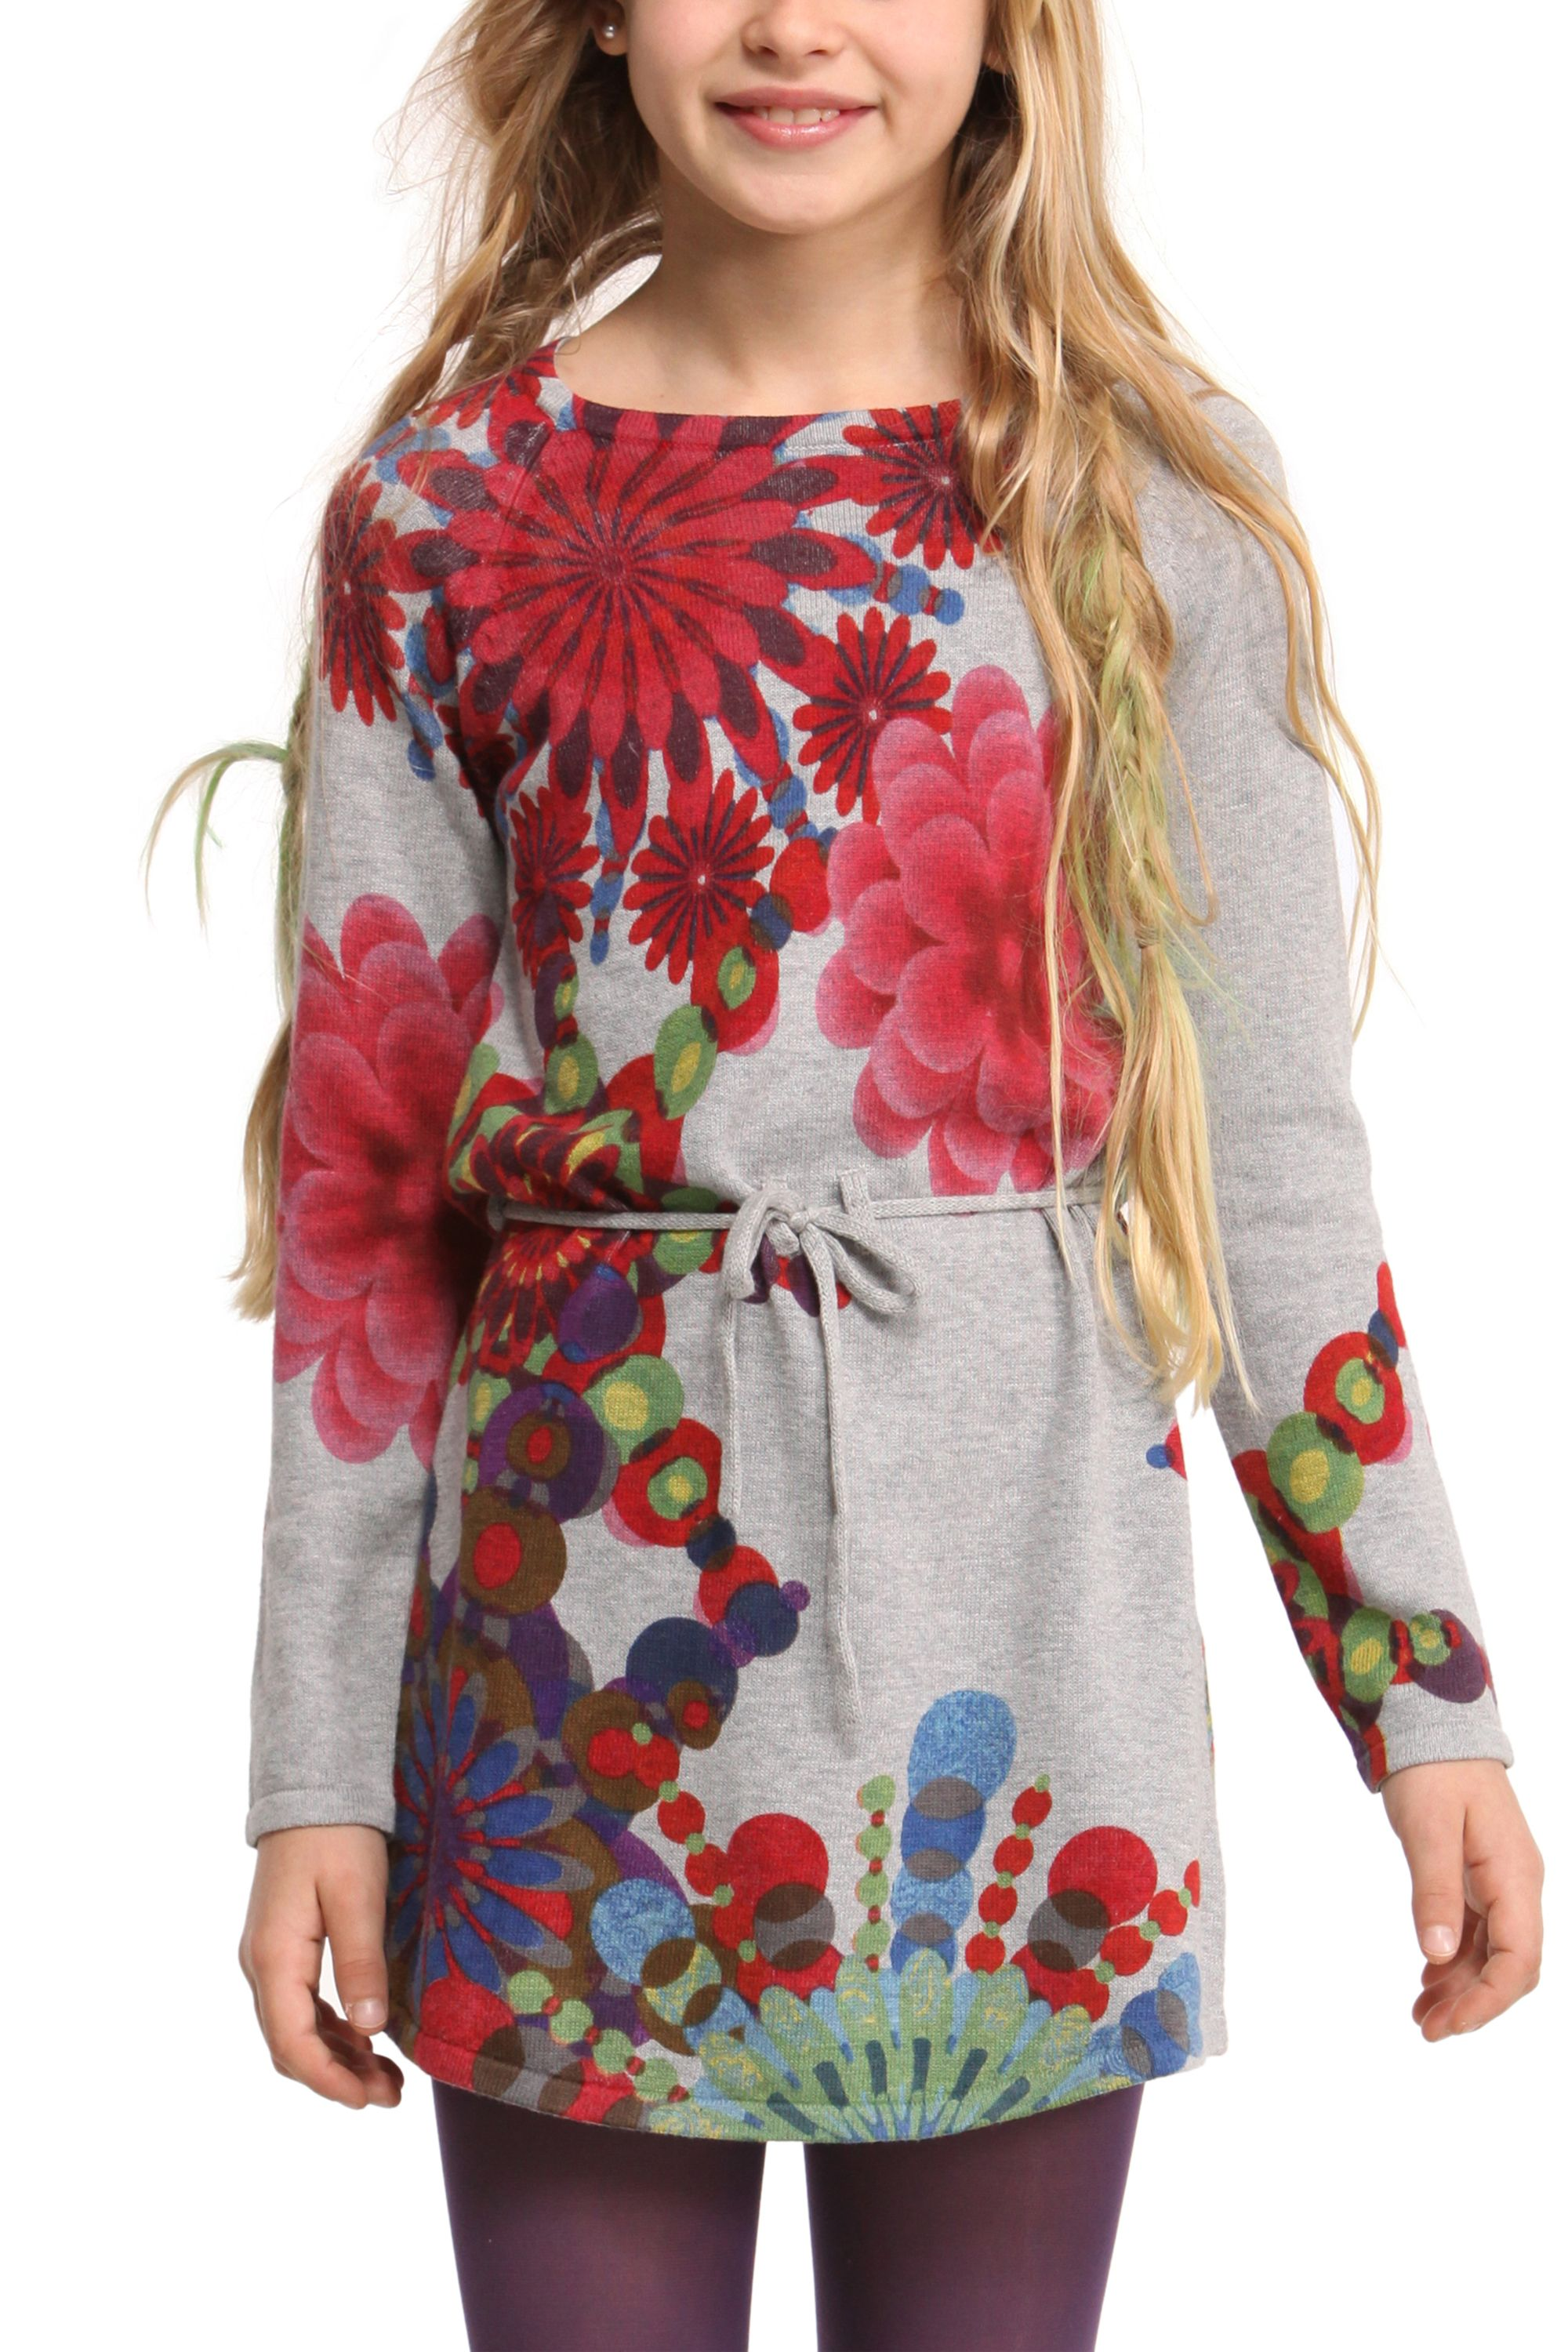 Girls disko jumper